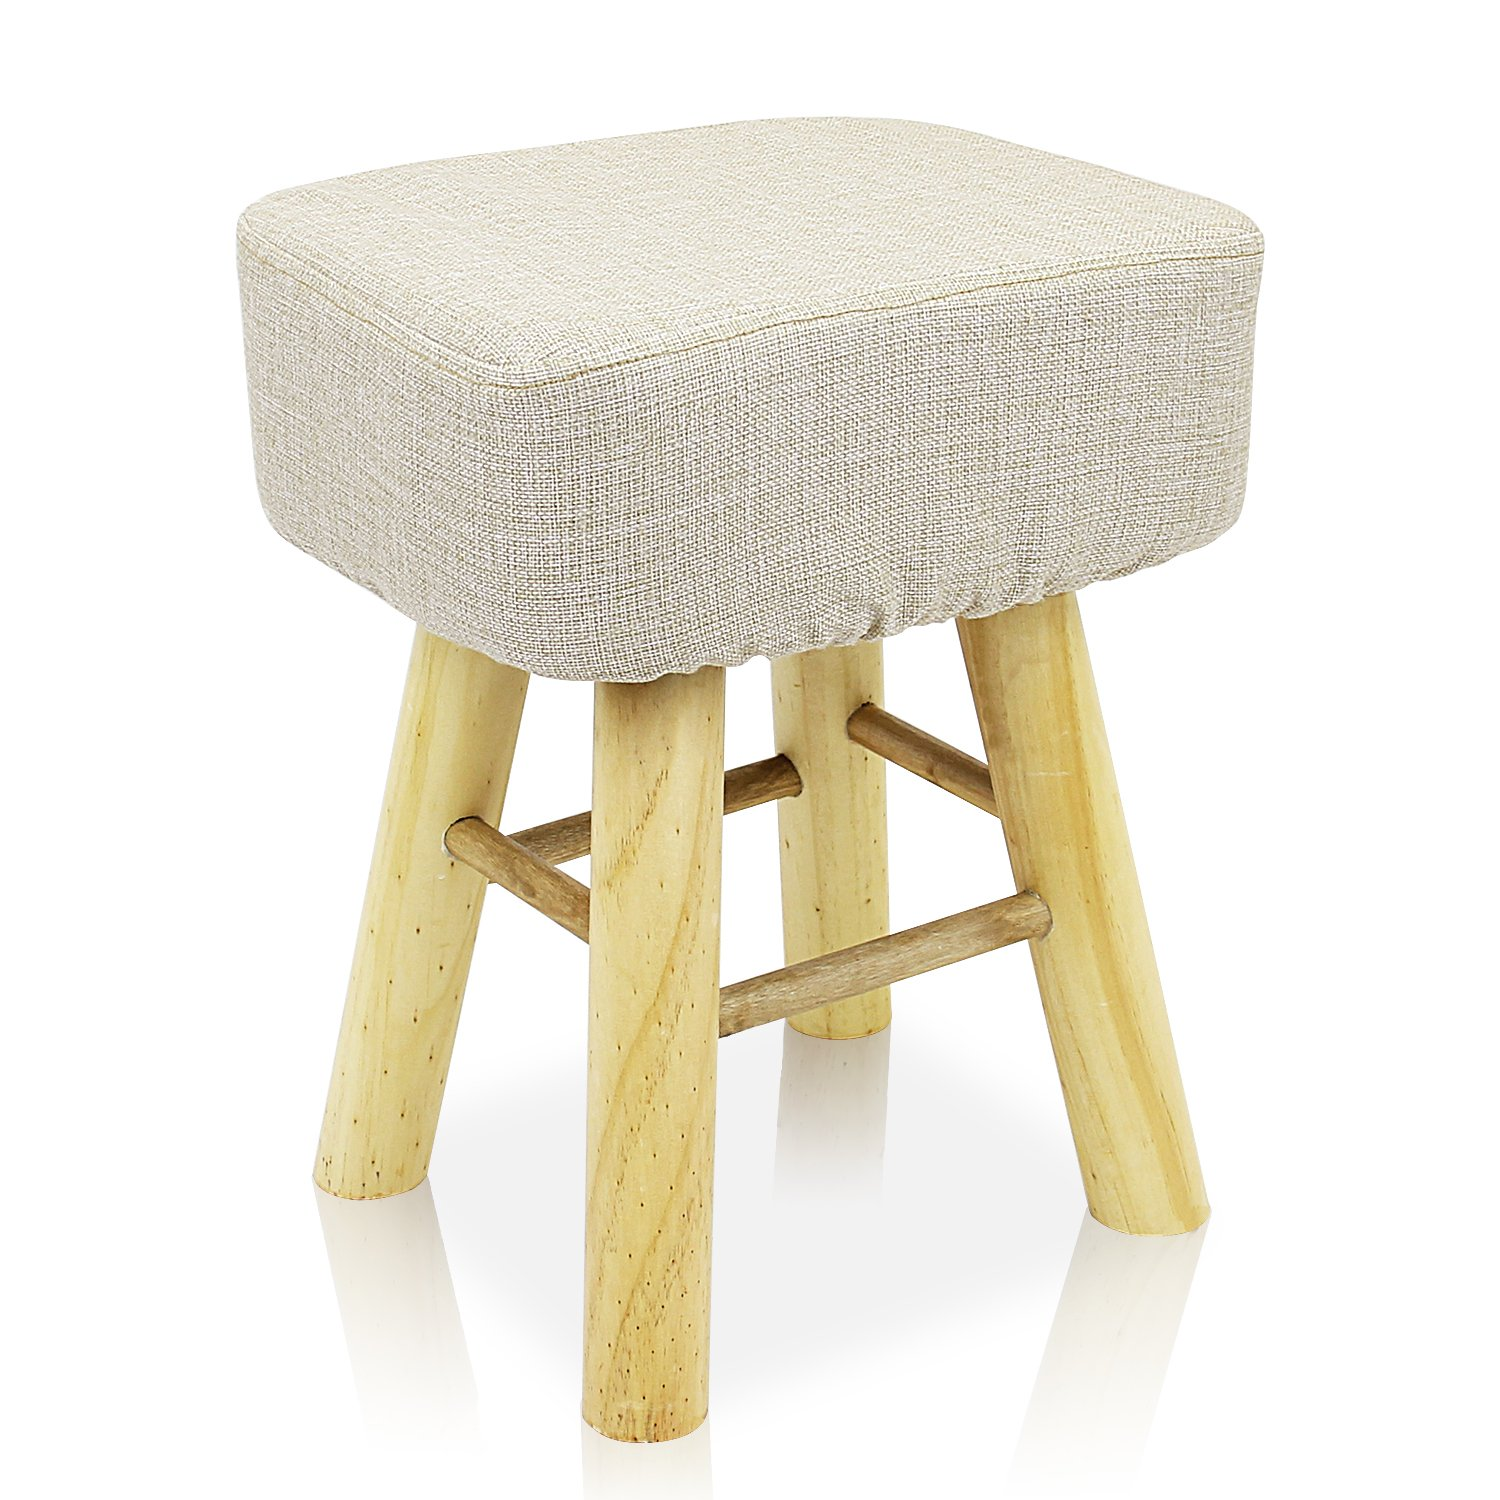 DL furniture - Square Ottoman Foot Stool, 4 long Leg Stands Square ShapeSquare Shape | Linen Fabric, Beige Cover